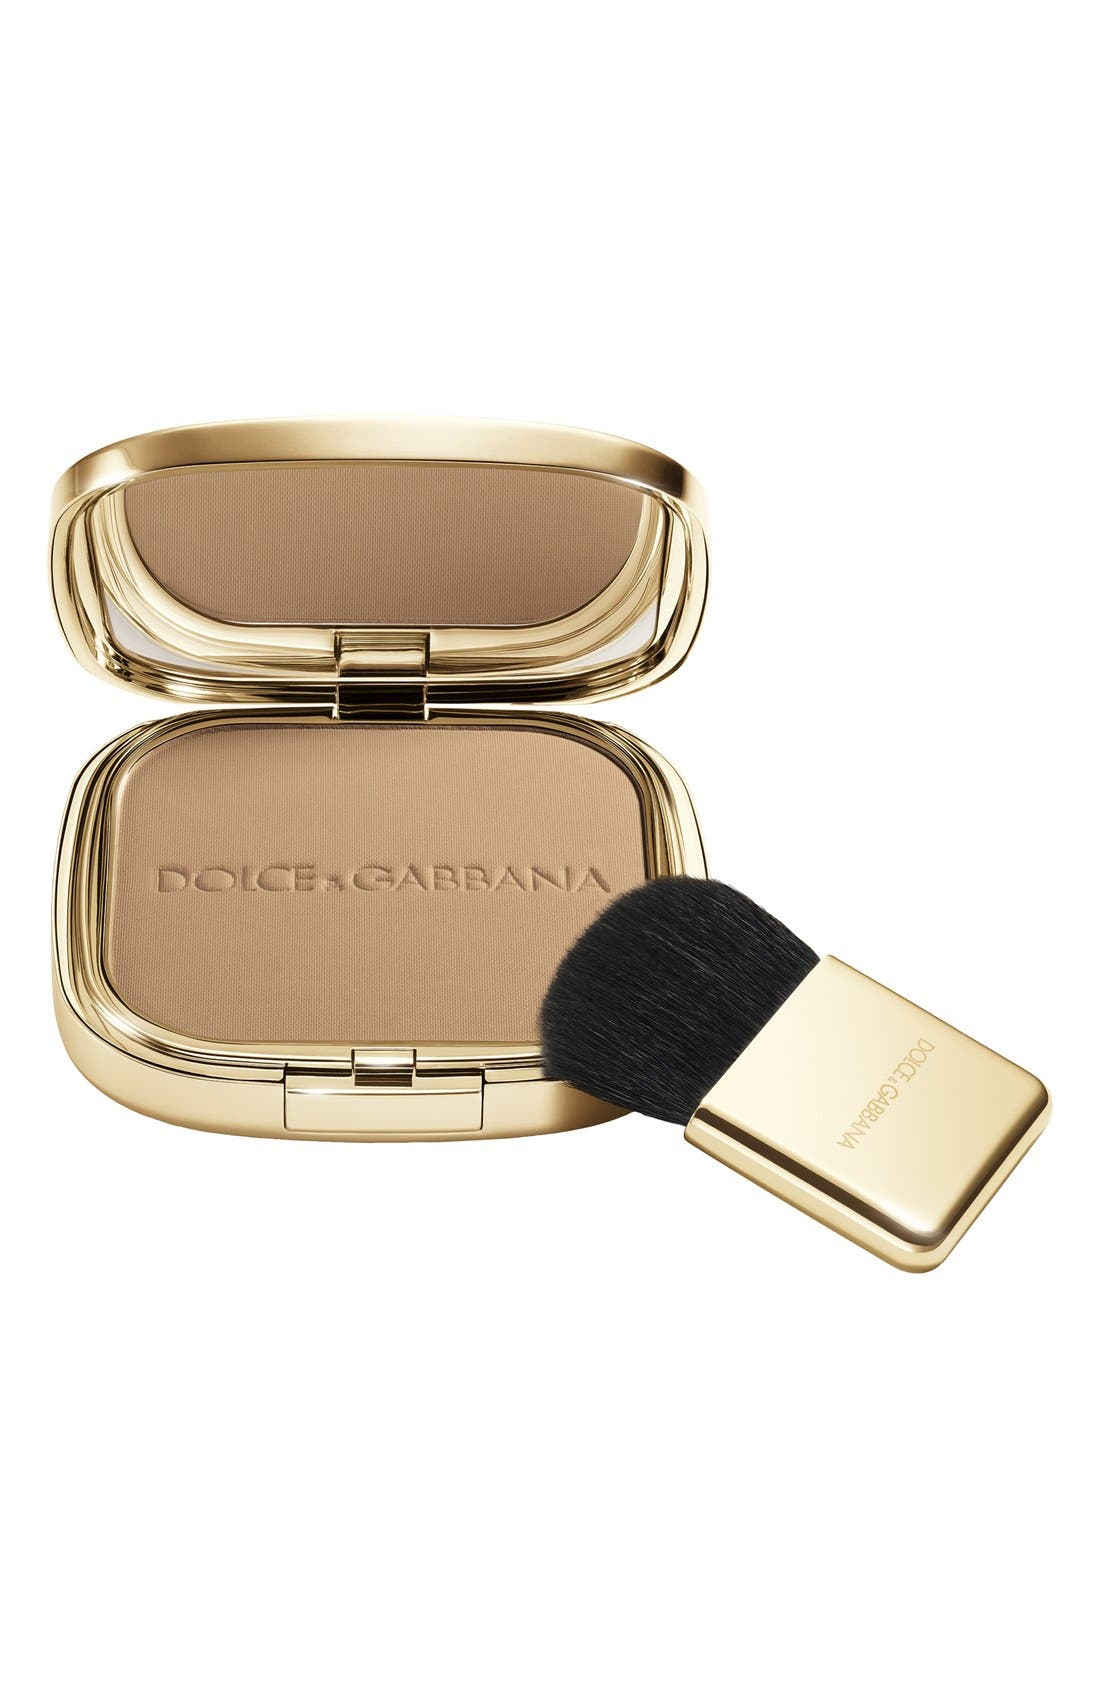 Dolce&Gabbana Beauty Perfection Veil Pressed Powder